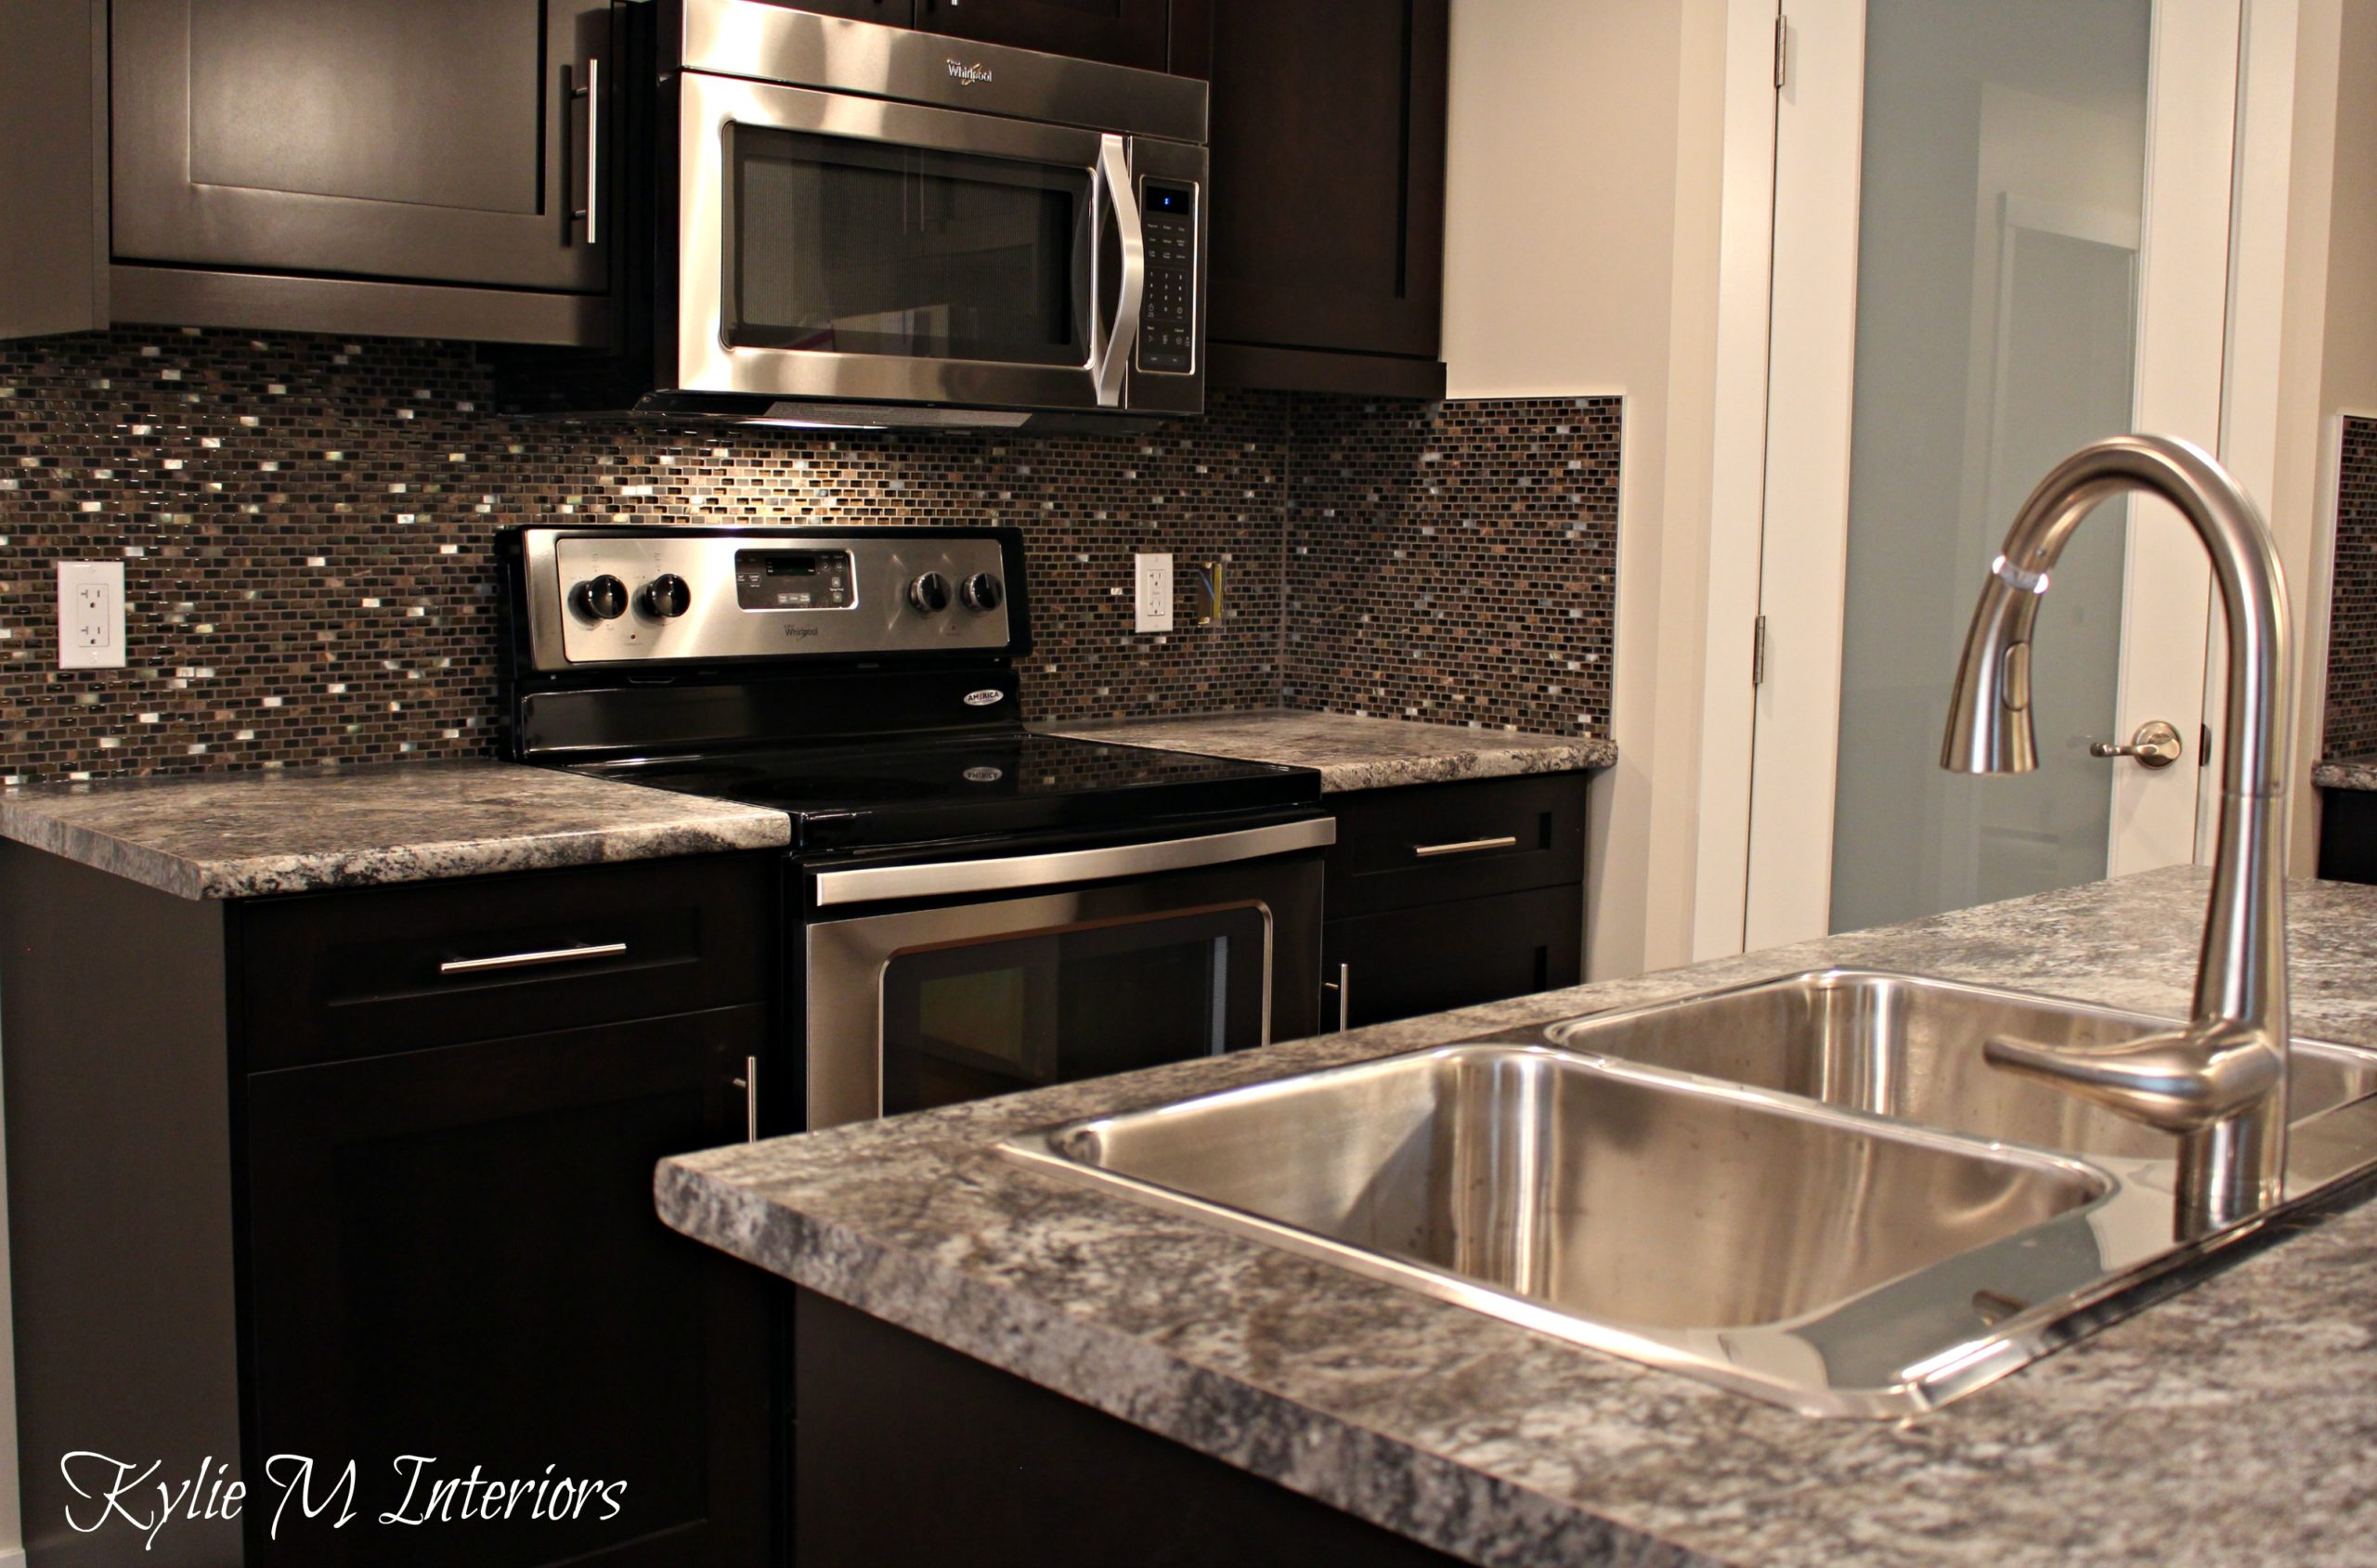 3 Kitchen Countertop Update Ideas How To Save Money